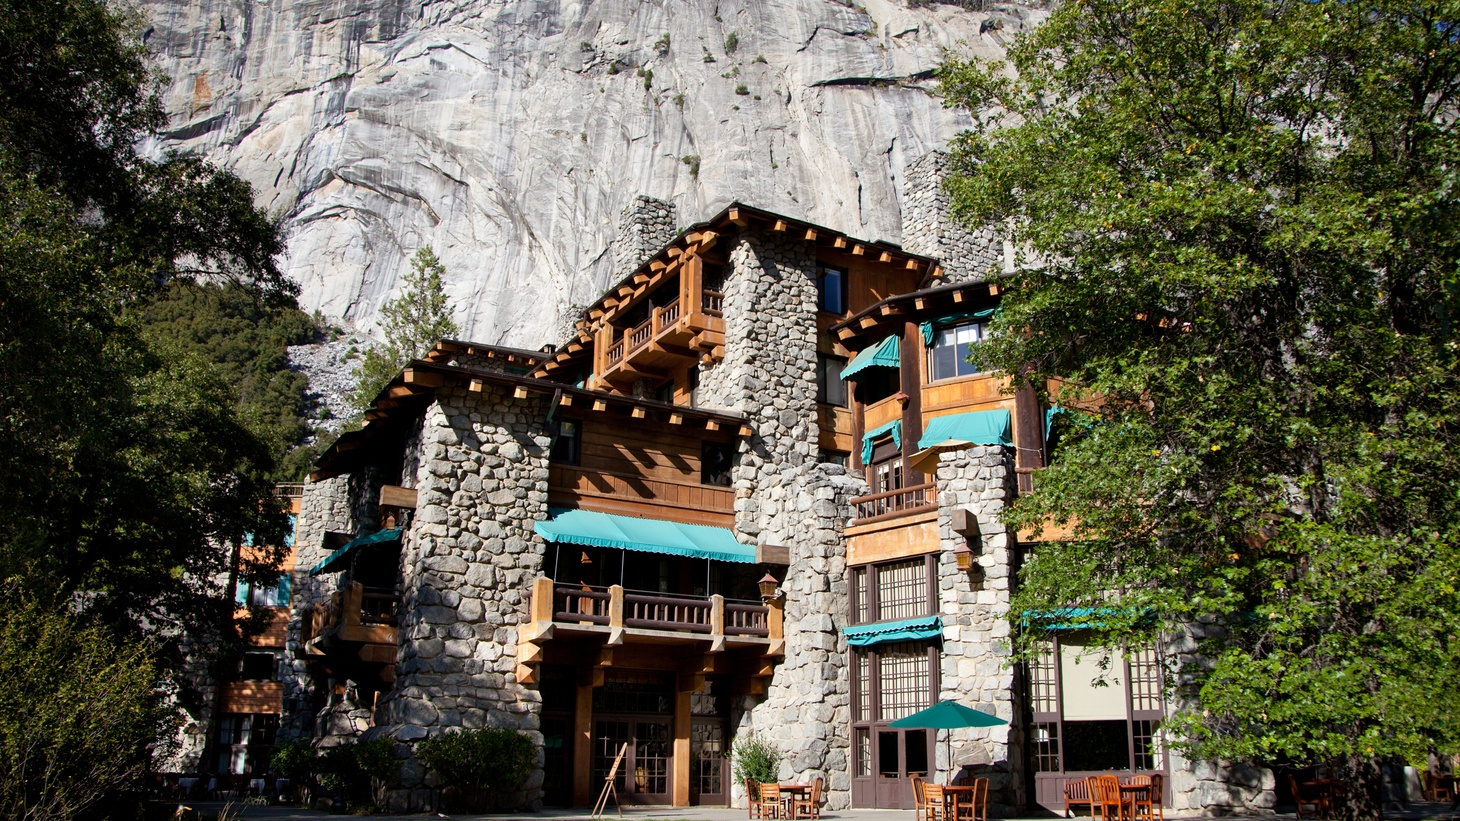 The Ahwahnee Hotel is about to become the Majestic Yosemite; The Wawona will be known as the Big Trees Lodge. Names that go back generations are being changed because of a trademark dispute between the National Park Service and a New York concessionaire that failed to renew its contract. Outraged residents and visitors are asking how that can happen